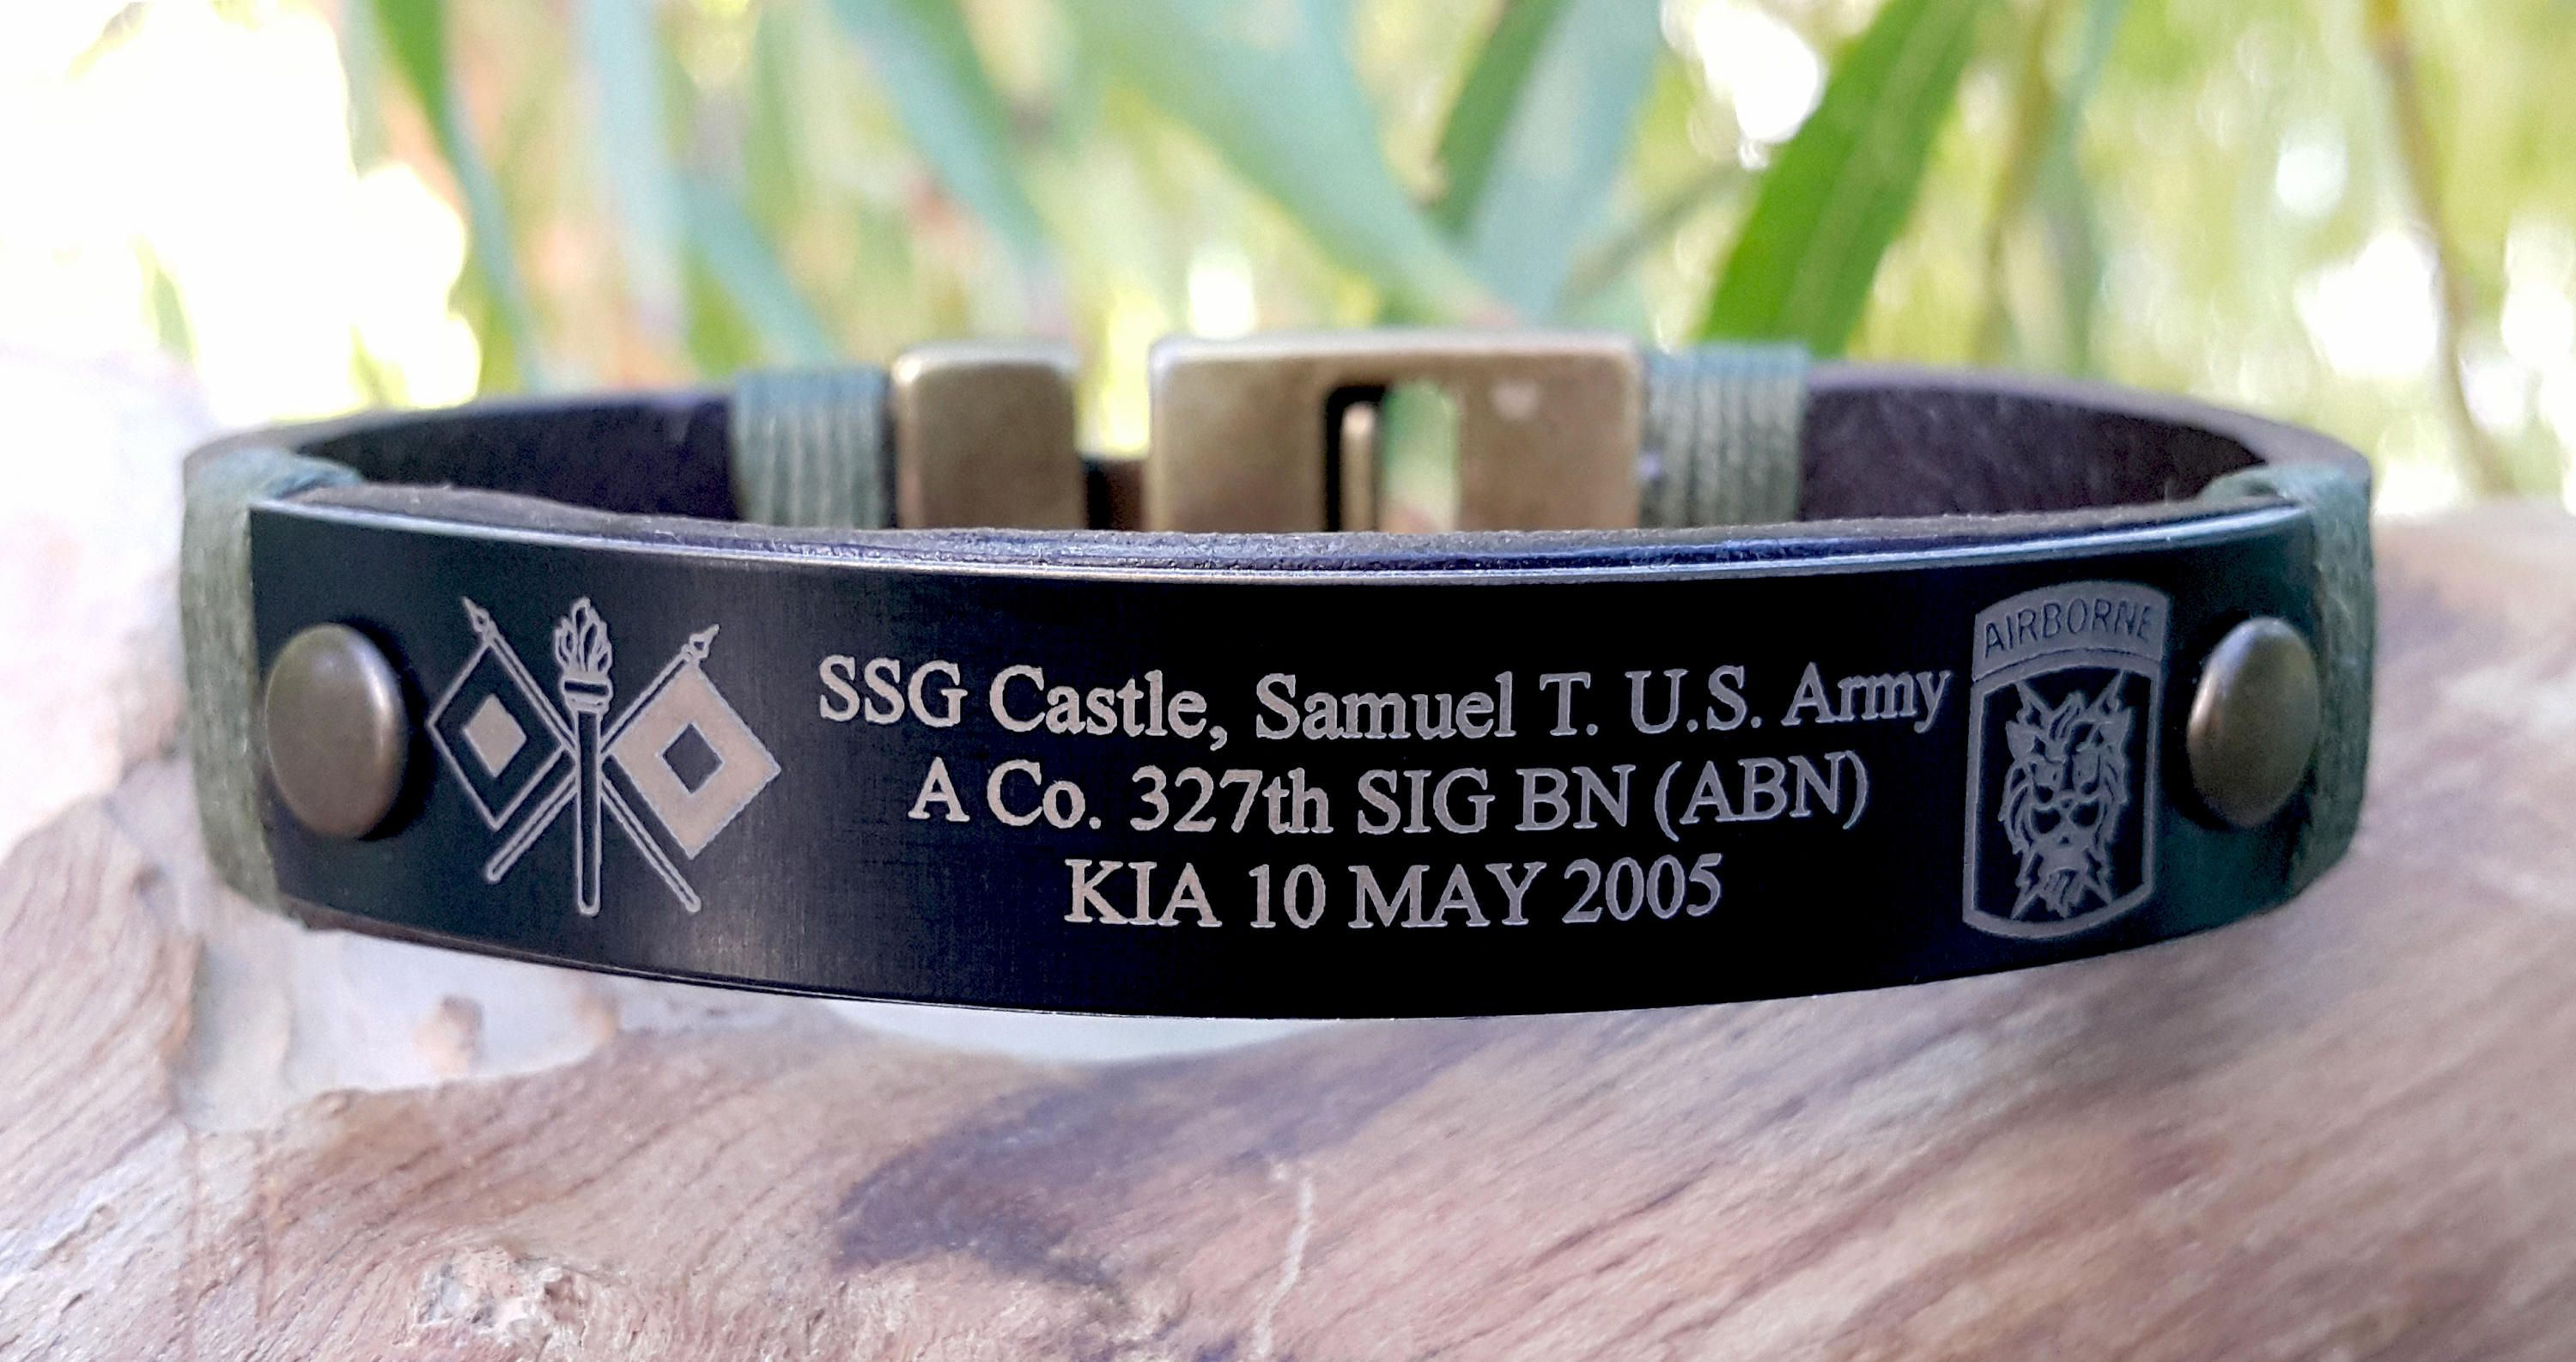 Military Bracelet Memorial Kia Loss Of Child Loved One Remembrance Personalized Gift For Him